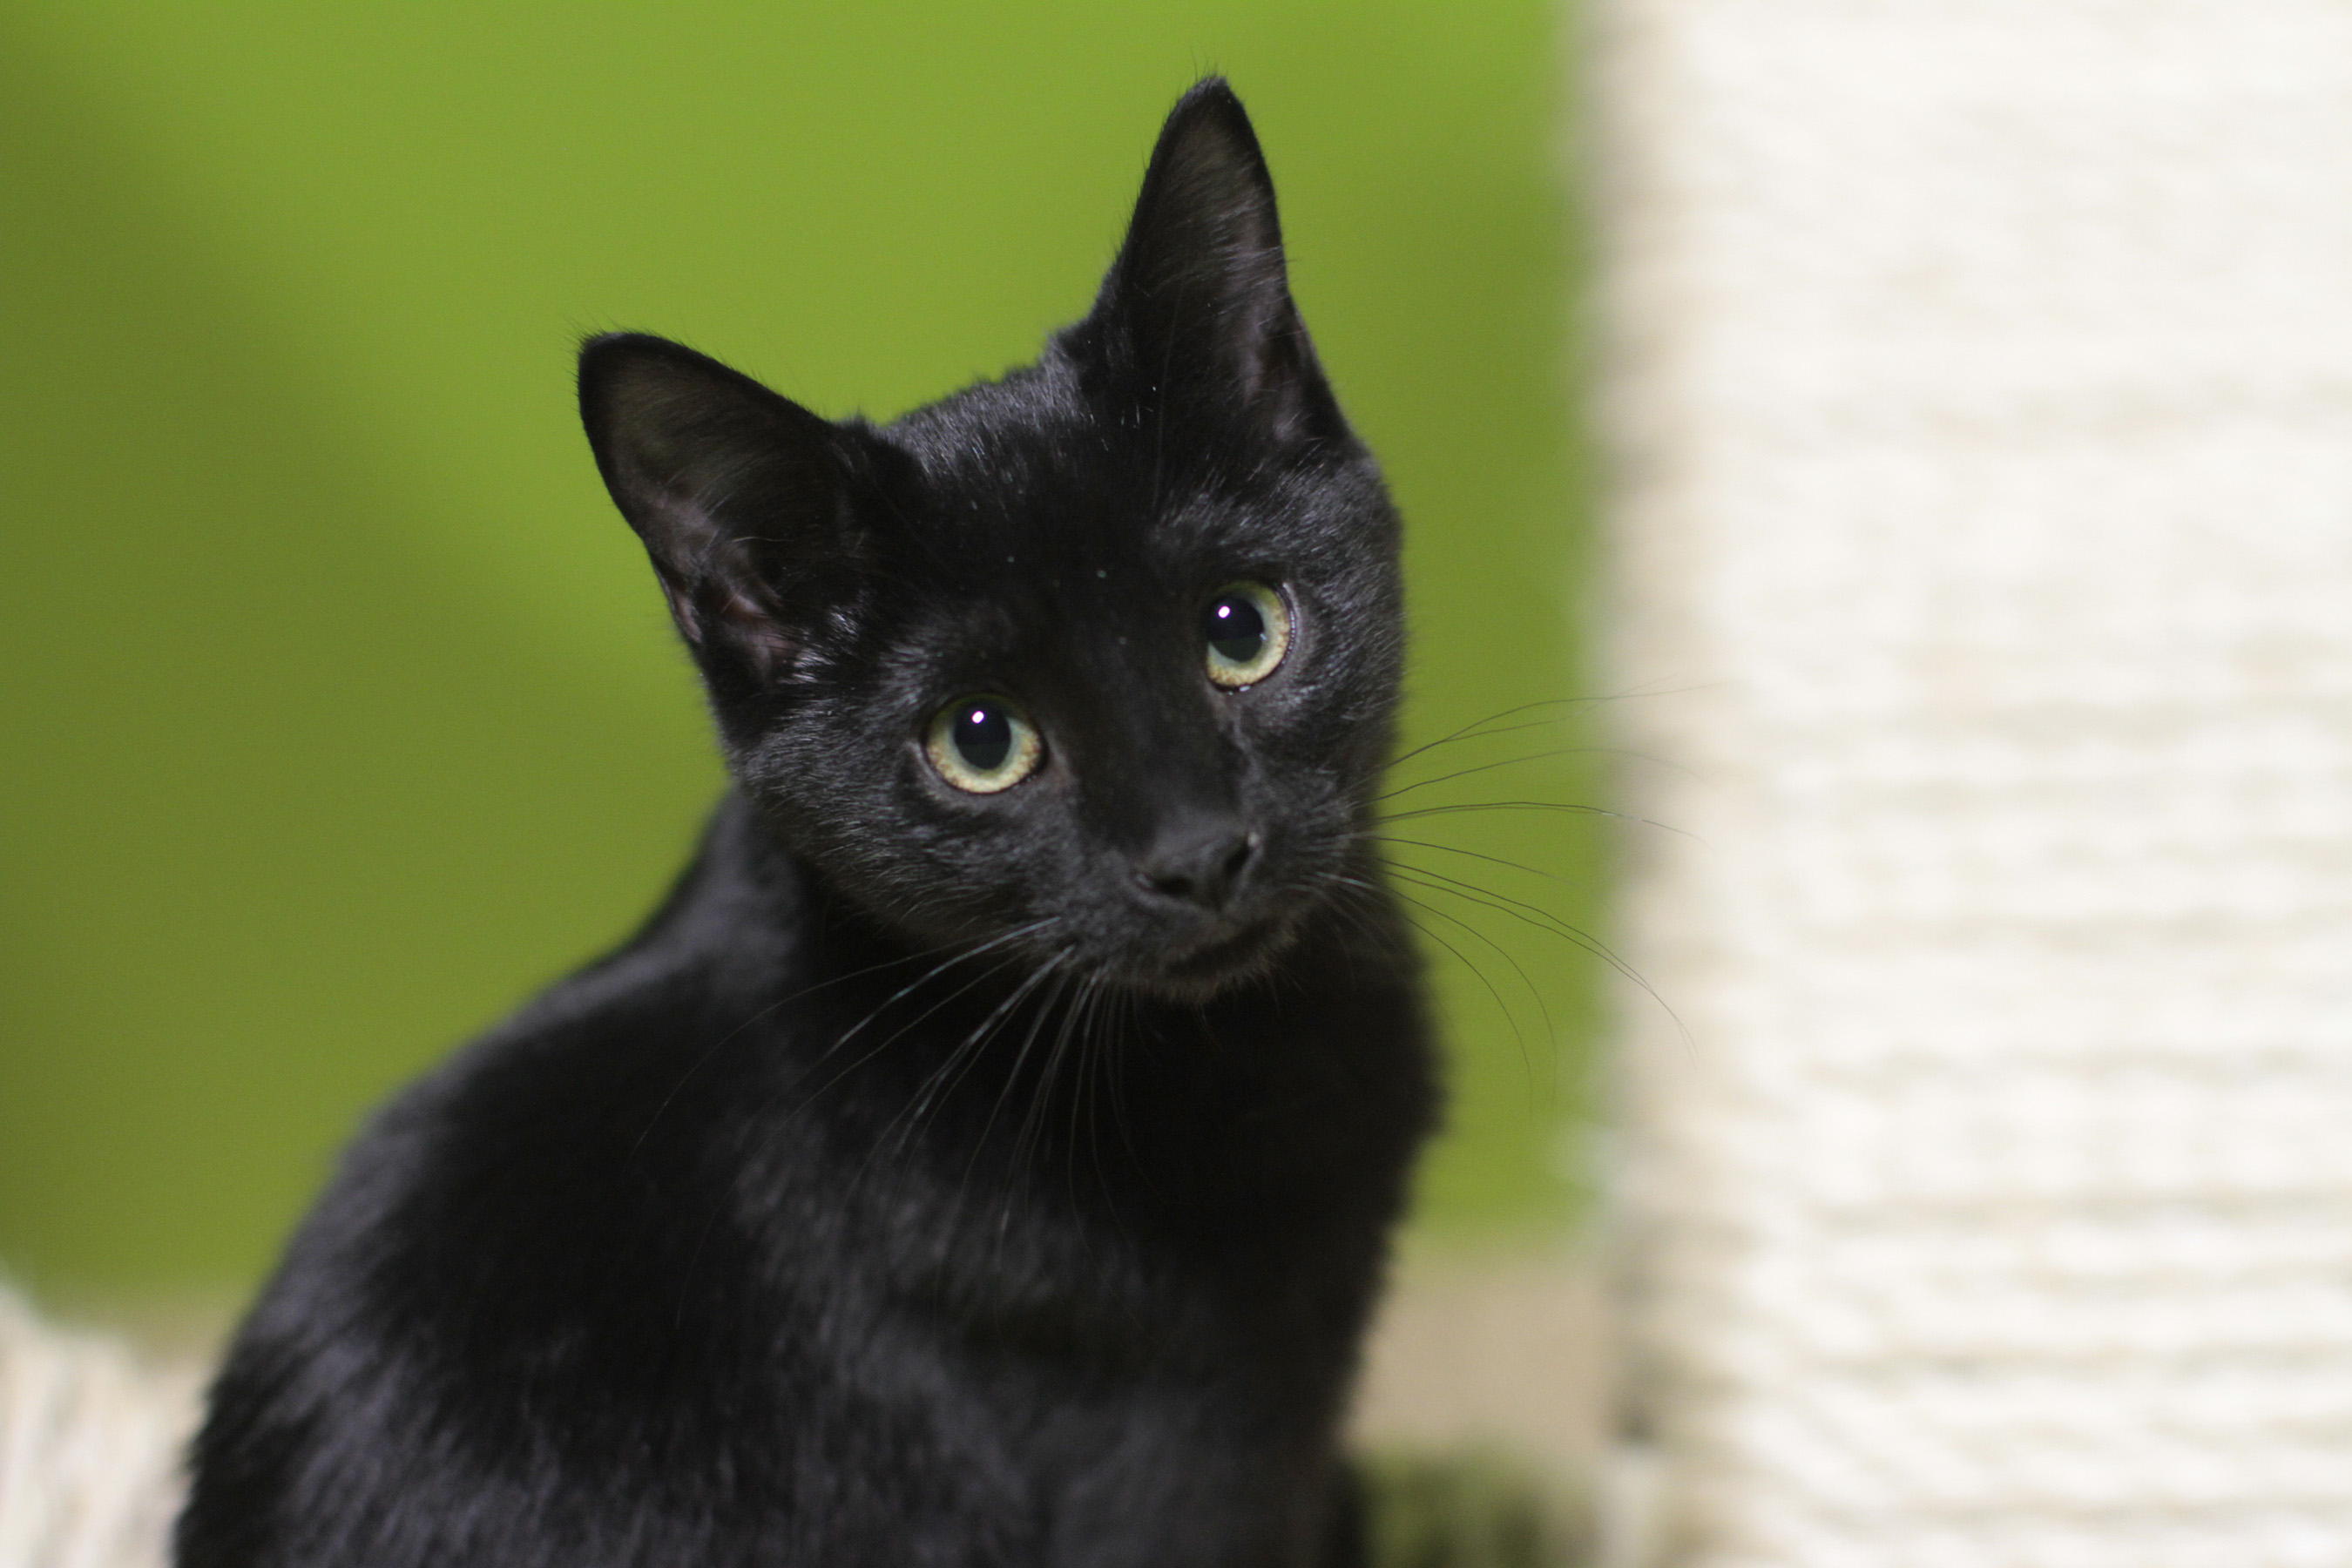 A Purina survey found that almost 50 percent of millennials surveyed own cats.